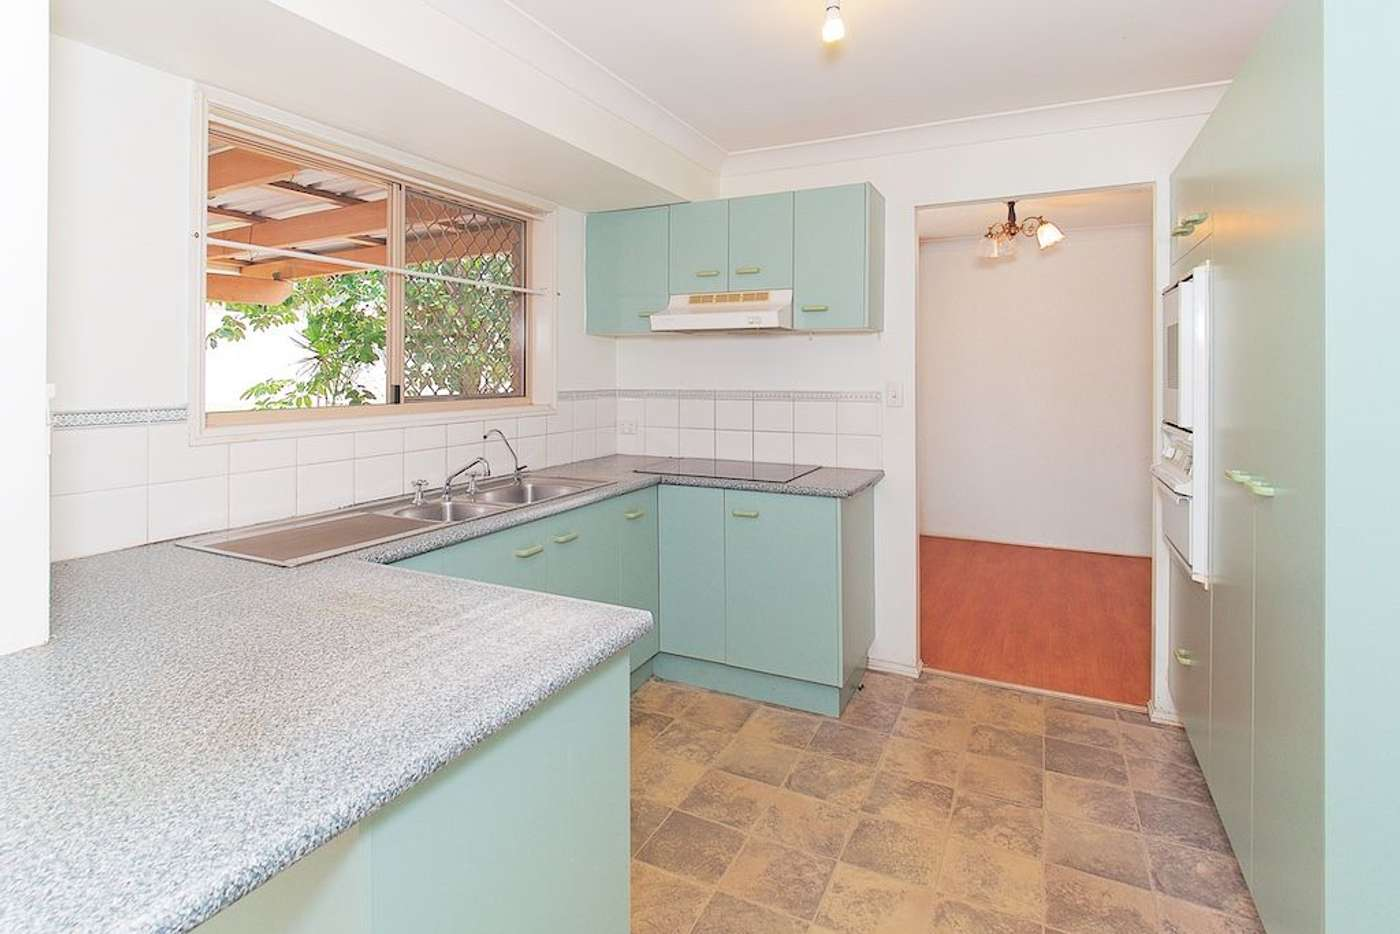 Sixth view of Homely house listing, 2 Warren Court, Loganlea QLD 4131